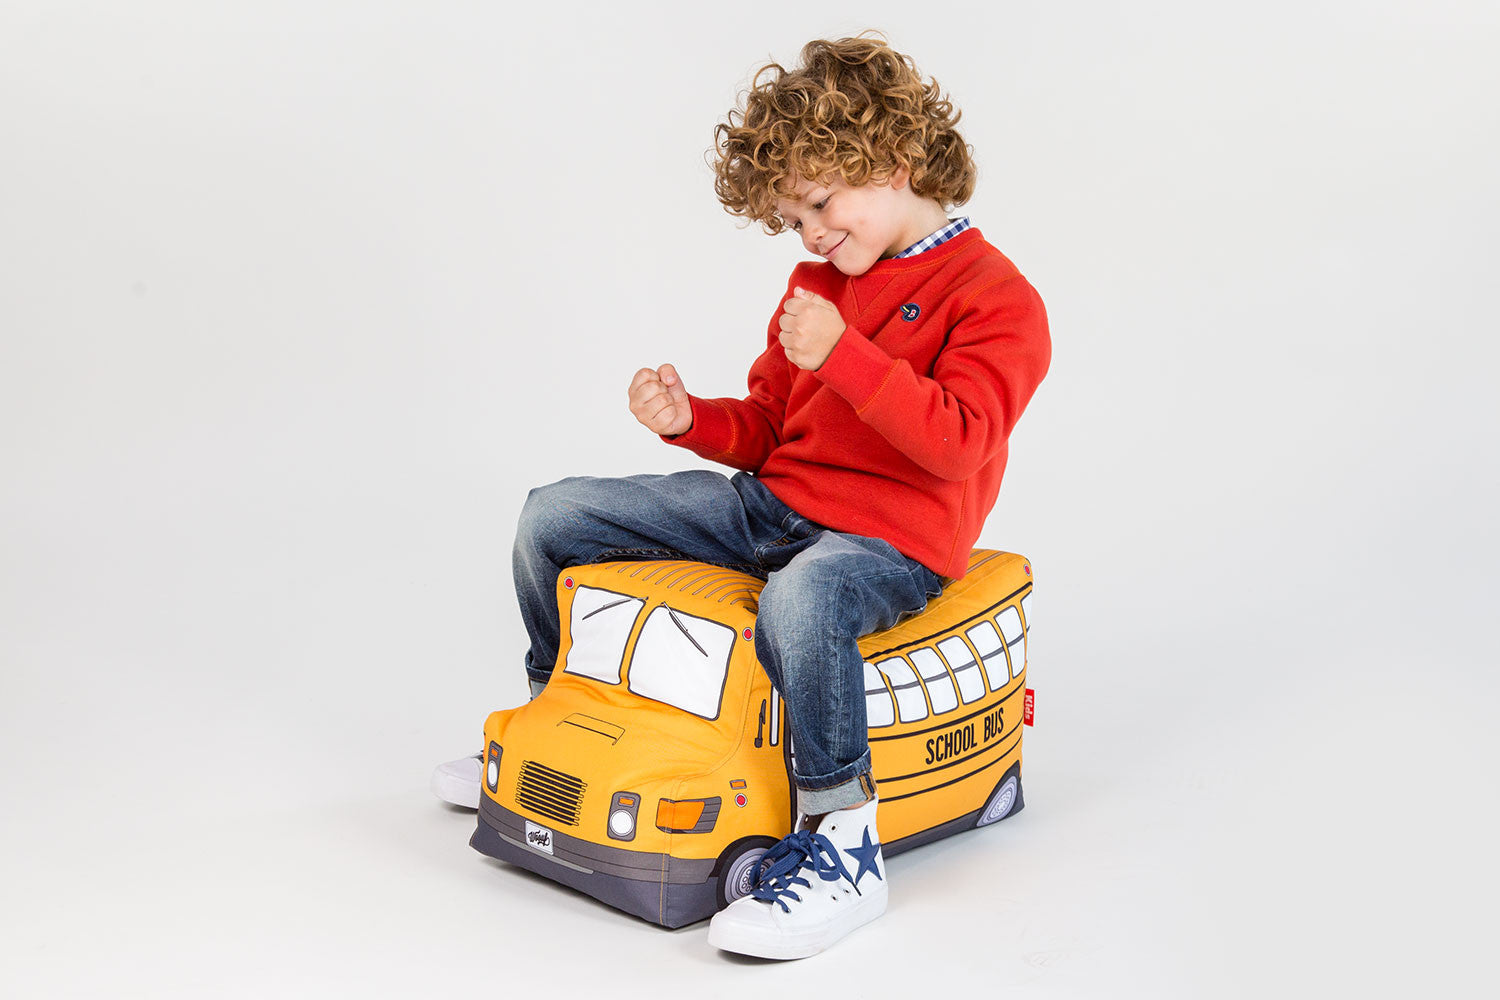 Woouf School Bus Beanbag | Maggie & Rose at Home